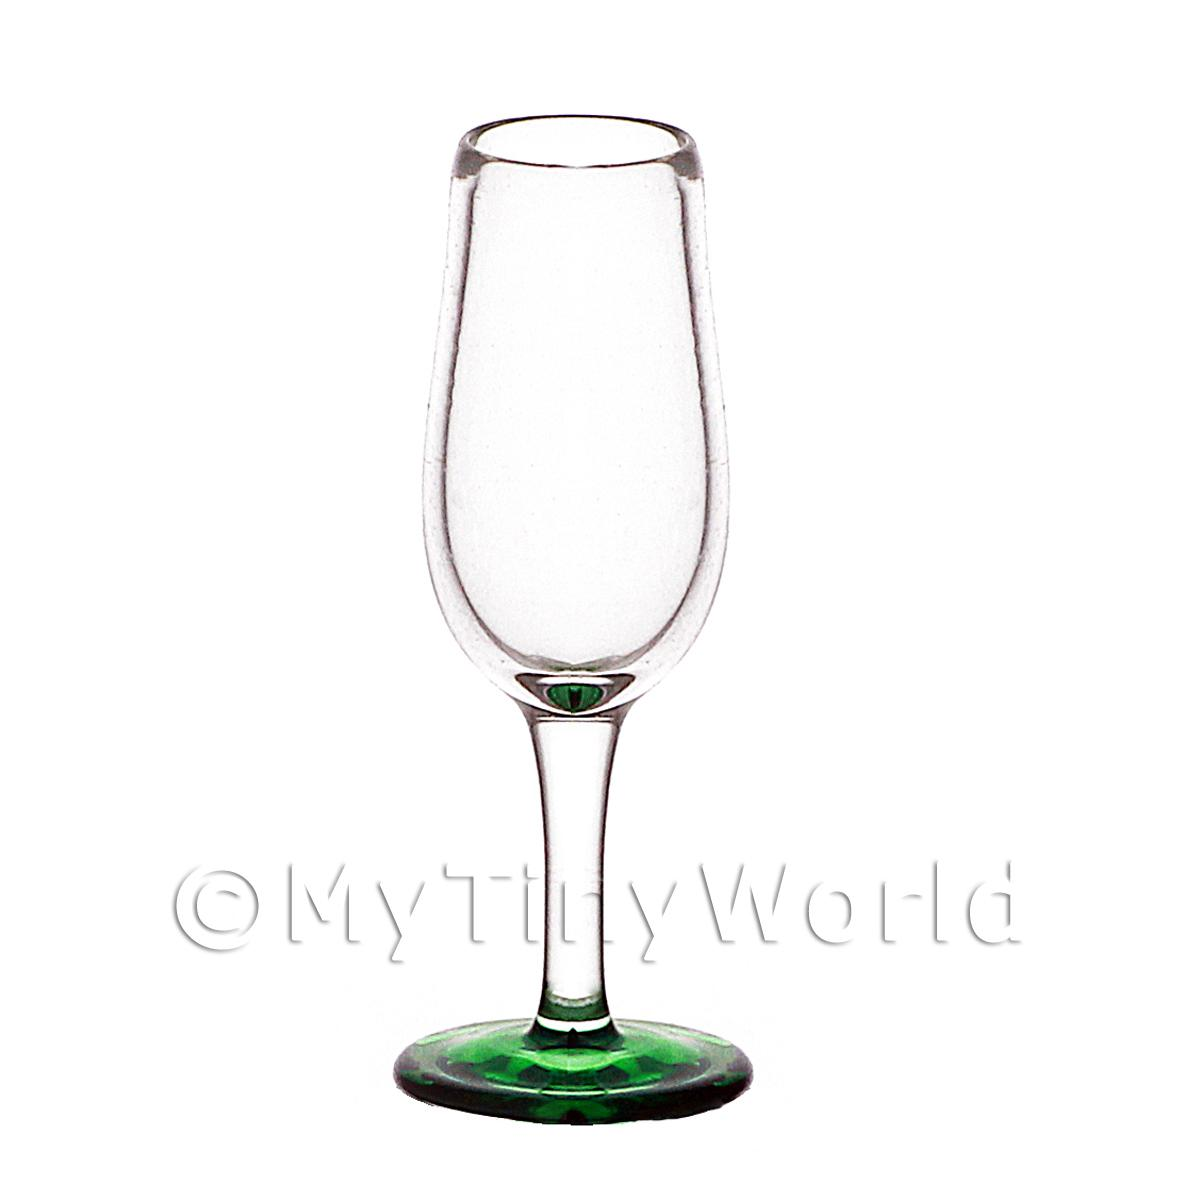 Dolls House Miniature Handmade Narrow Neck Green Based Wine Glass